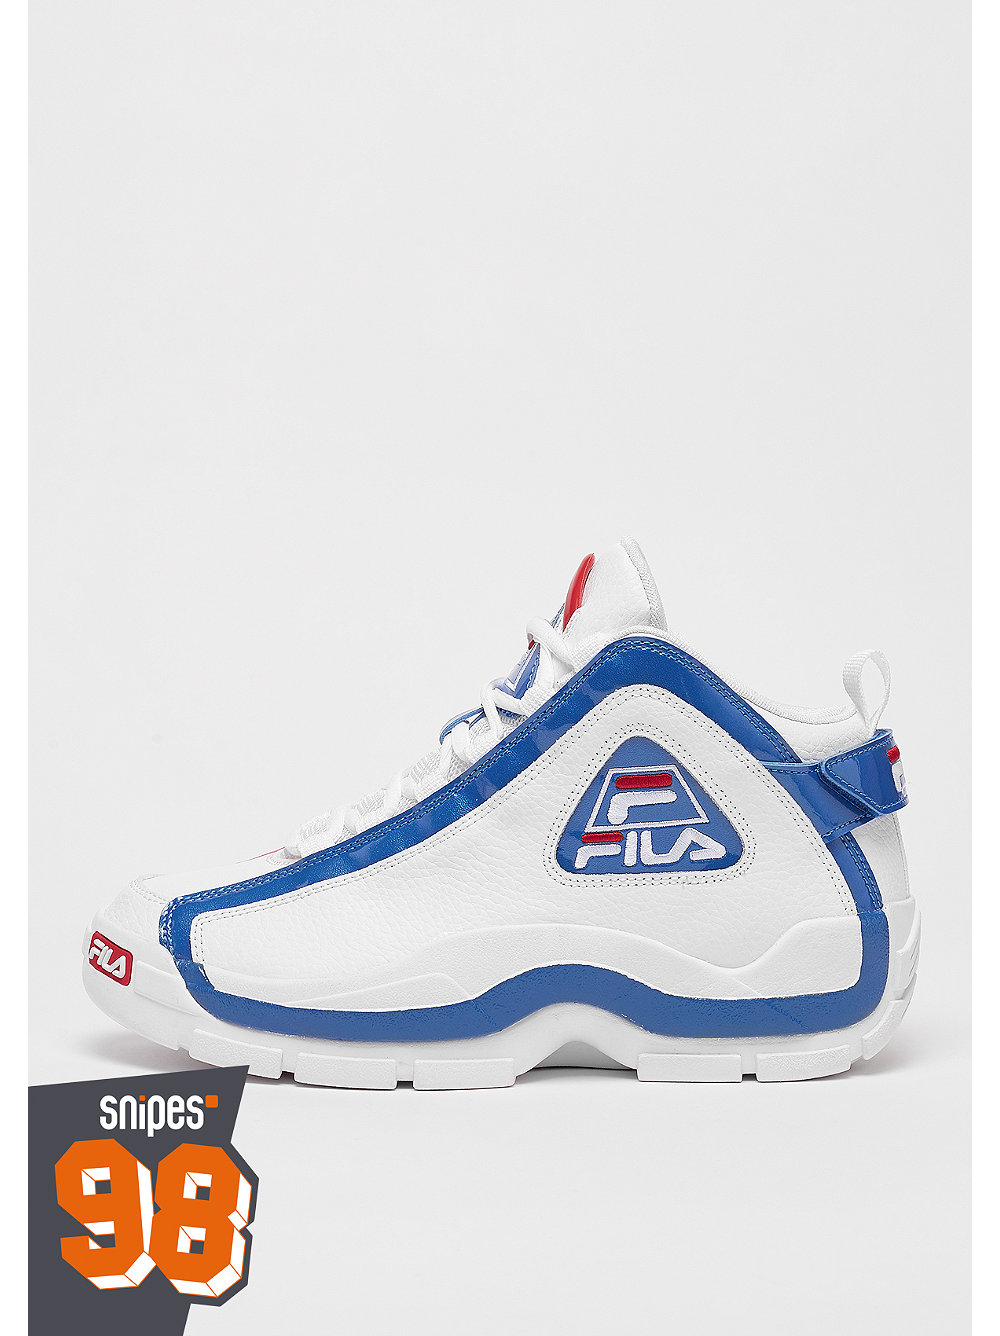 newest collection b7ab7 73f53 Snipes Celebrates 1998 with New Fila 96 Collaboration ...